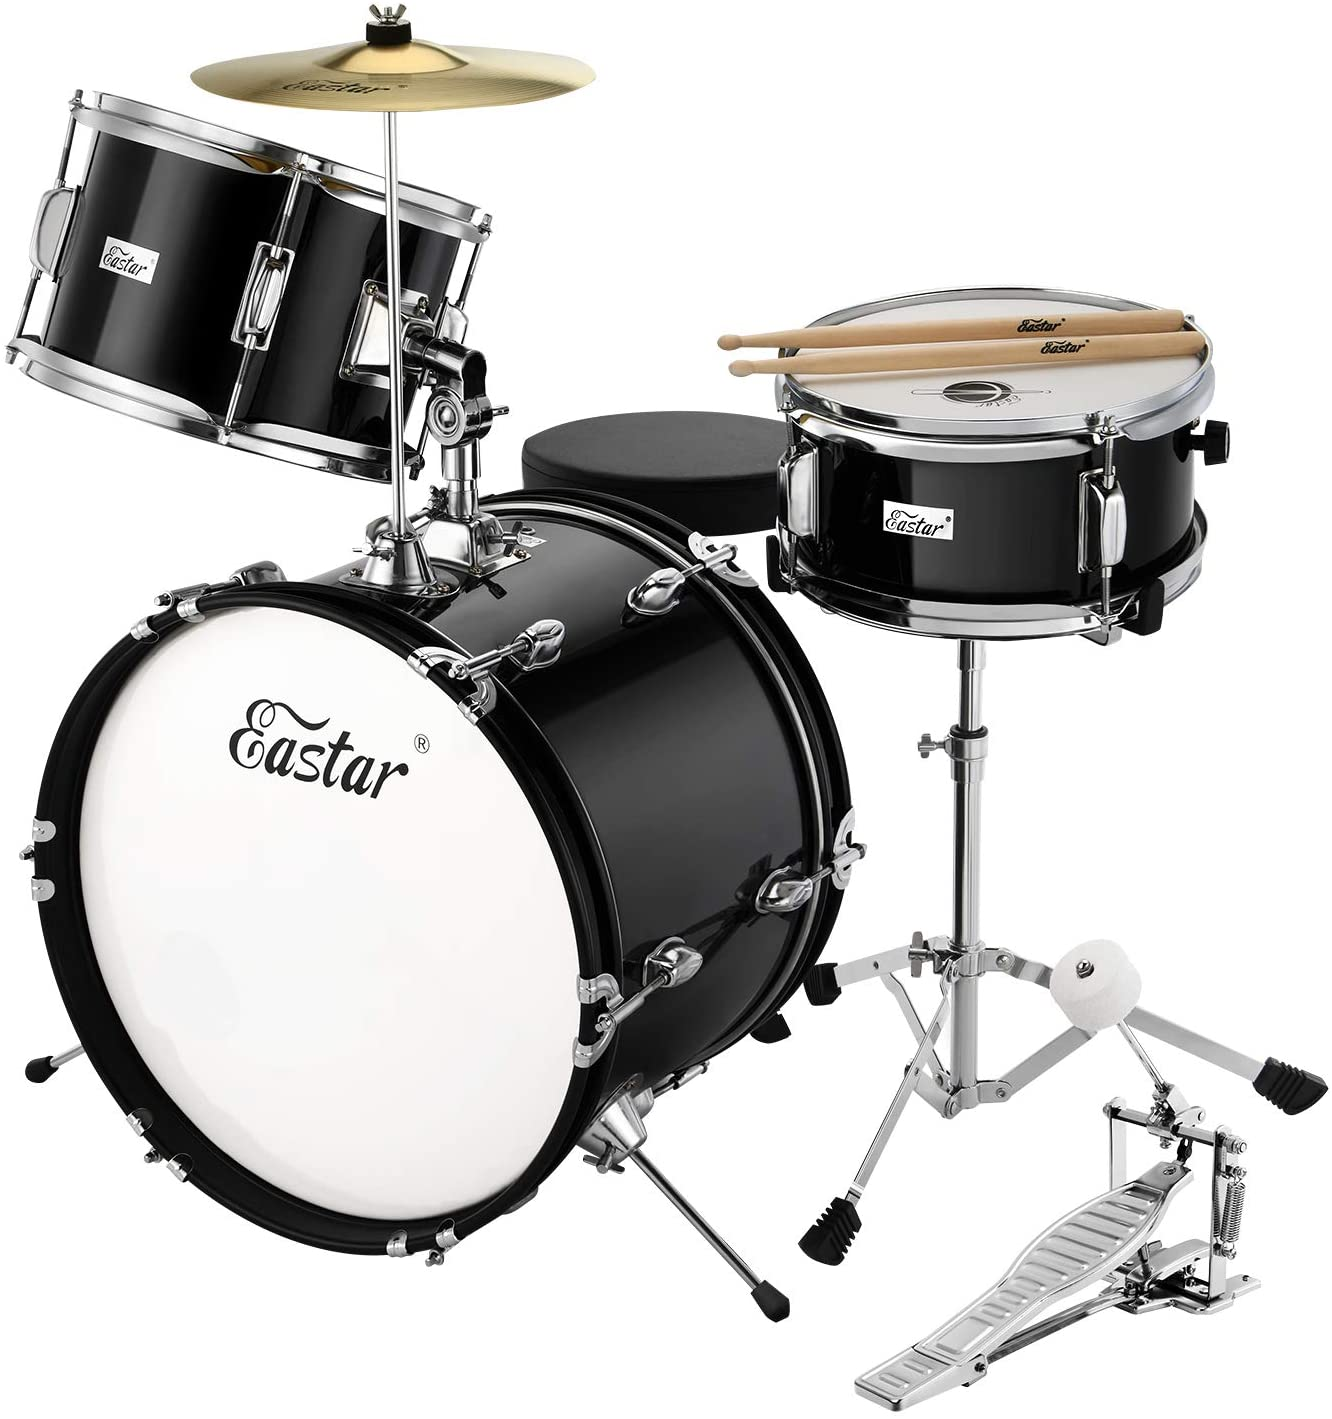 EDS-350R Pedal /& Drumsticks Metallic Red Eastar 16 inch Junior Drum Set Kids Drum Set 5-Piece with Adjustable Throne and Cymbal